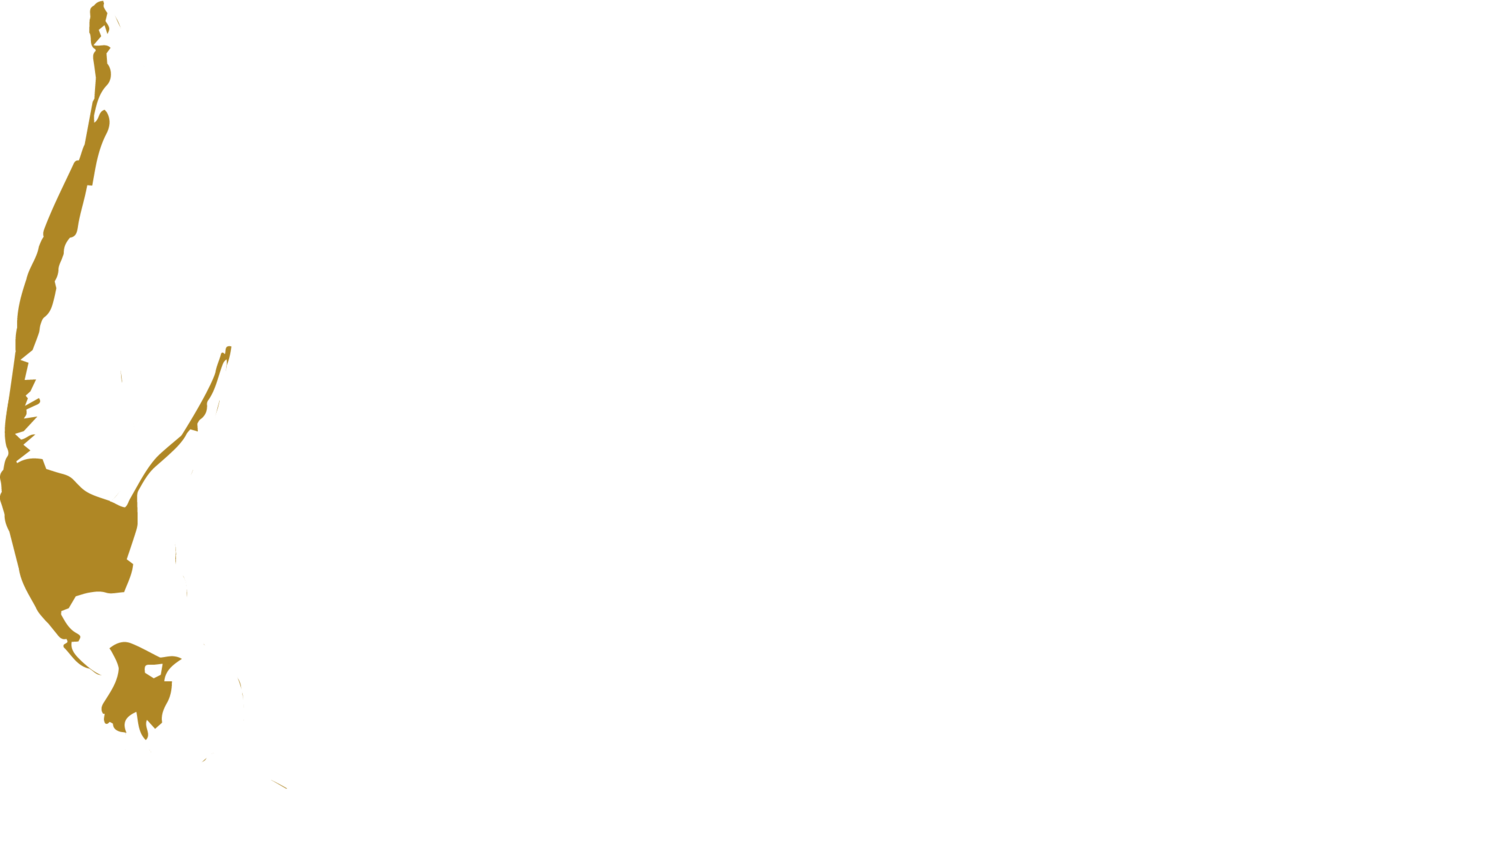 More Life Adventures